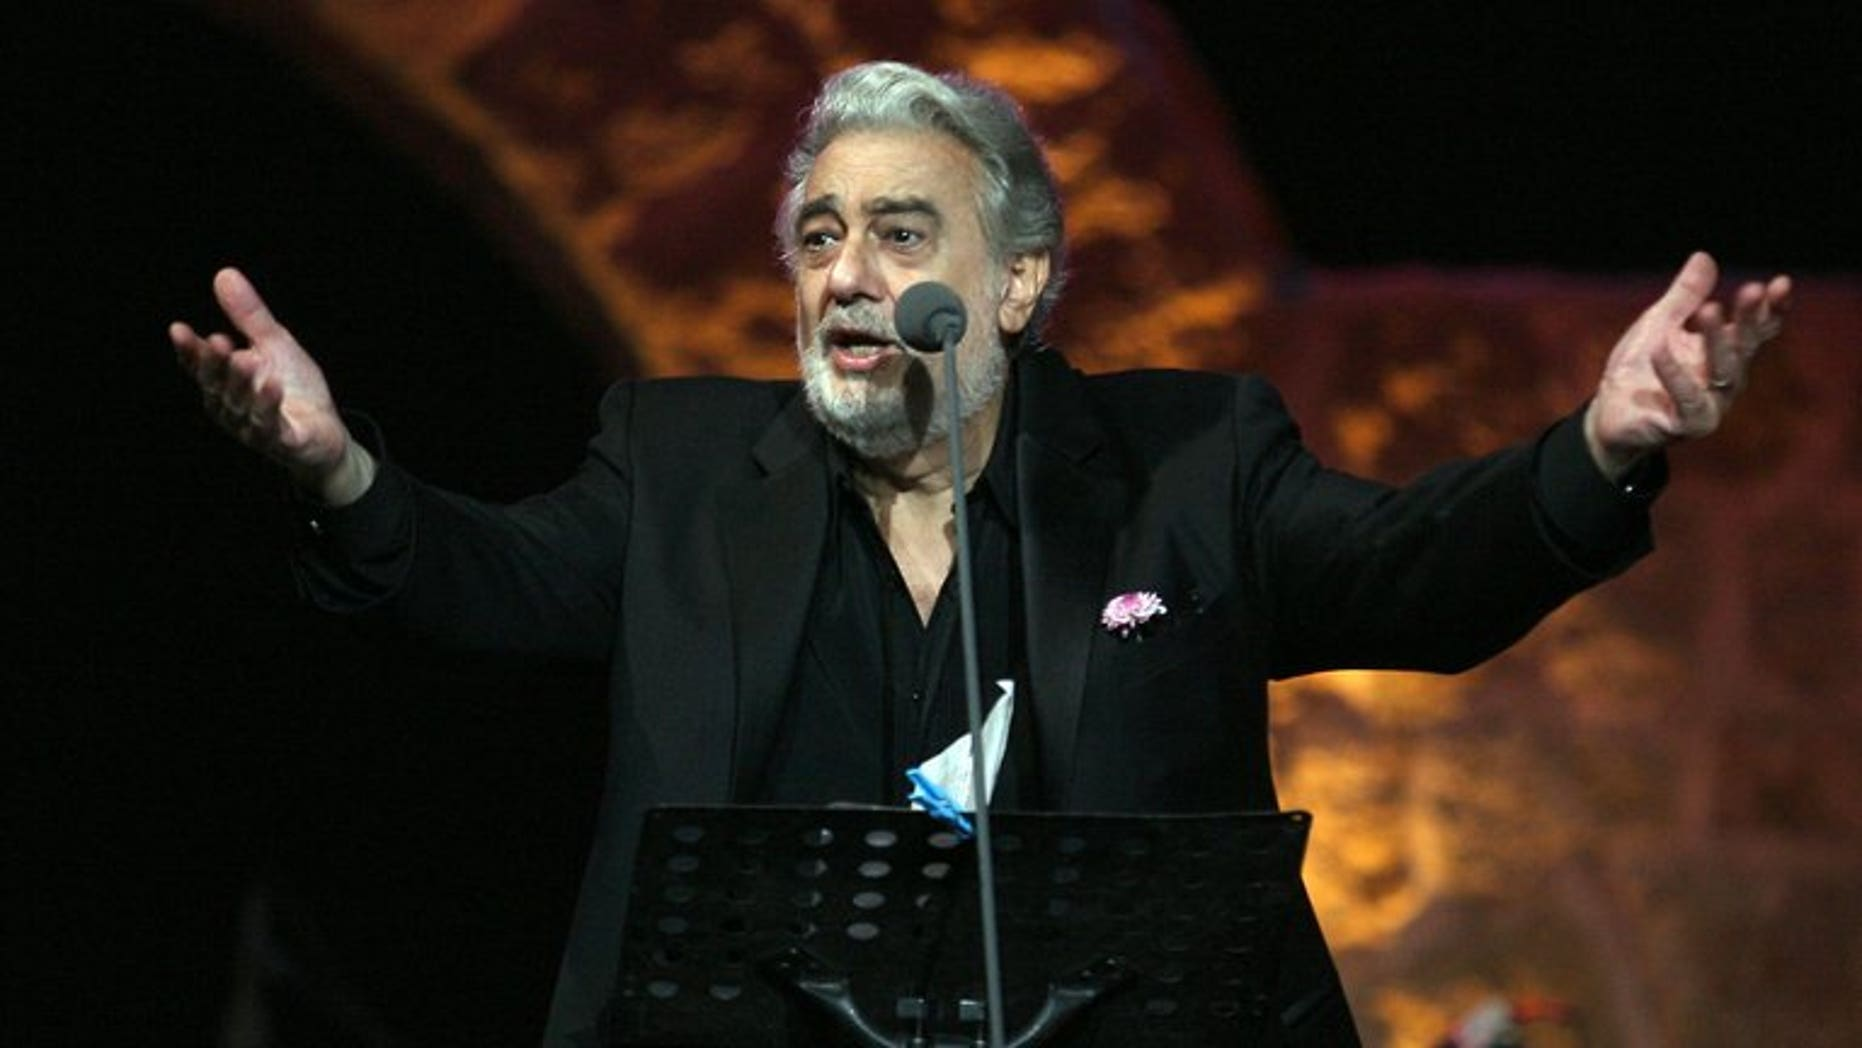 Spanish tenor Placido Domingo performs in Zouk Michael, Lebanon, on July 17, 2011. Domingo is being treated in a Madrid hospital for a pulmonary embolism, a blockage of an artery of the lungs, his agents said Tuesday.